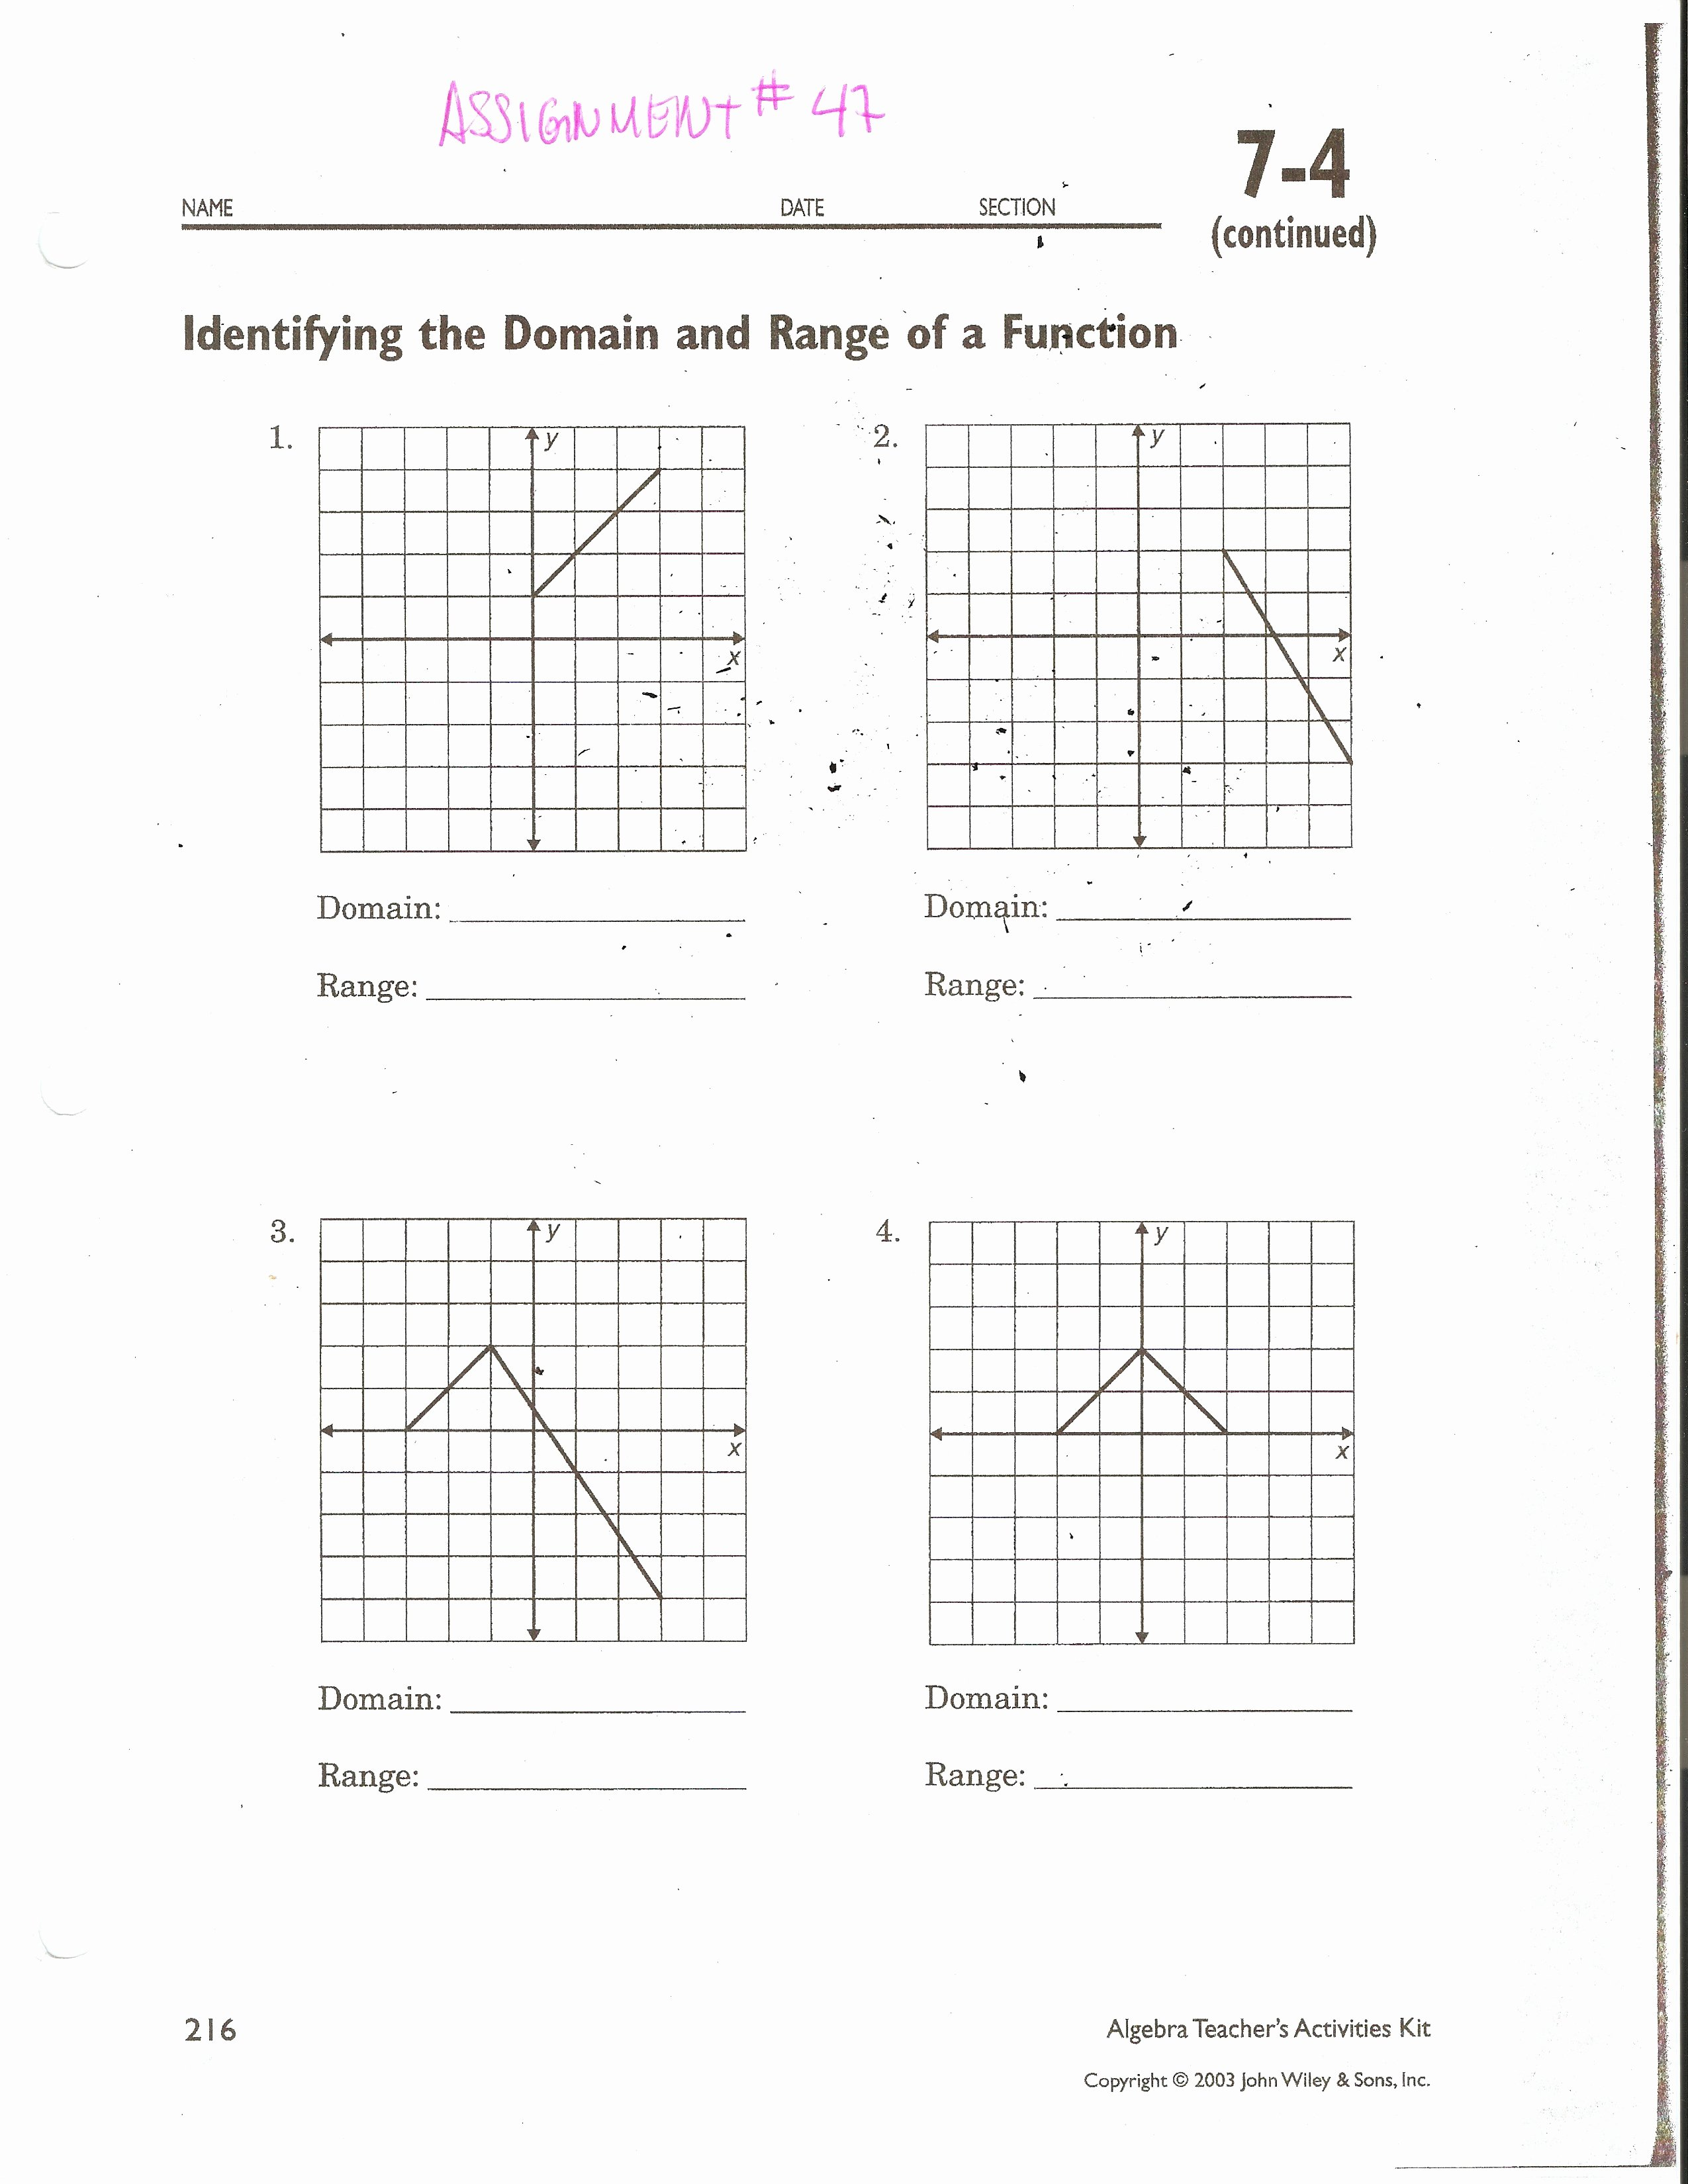 Domain and Range Worksheet Answers New Domain and Range Graph Worksheet Answers Fresh 10 Unique